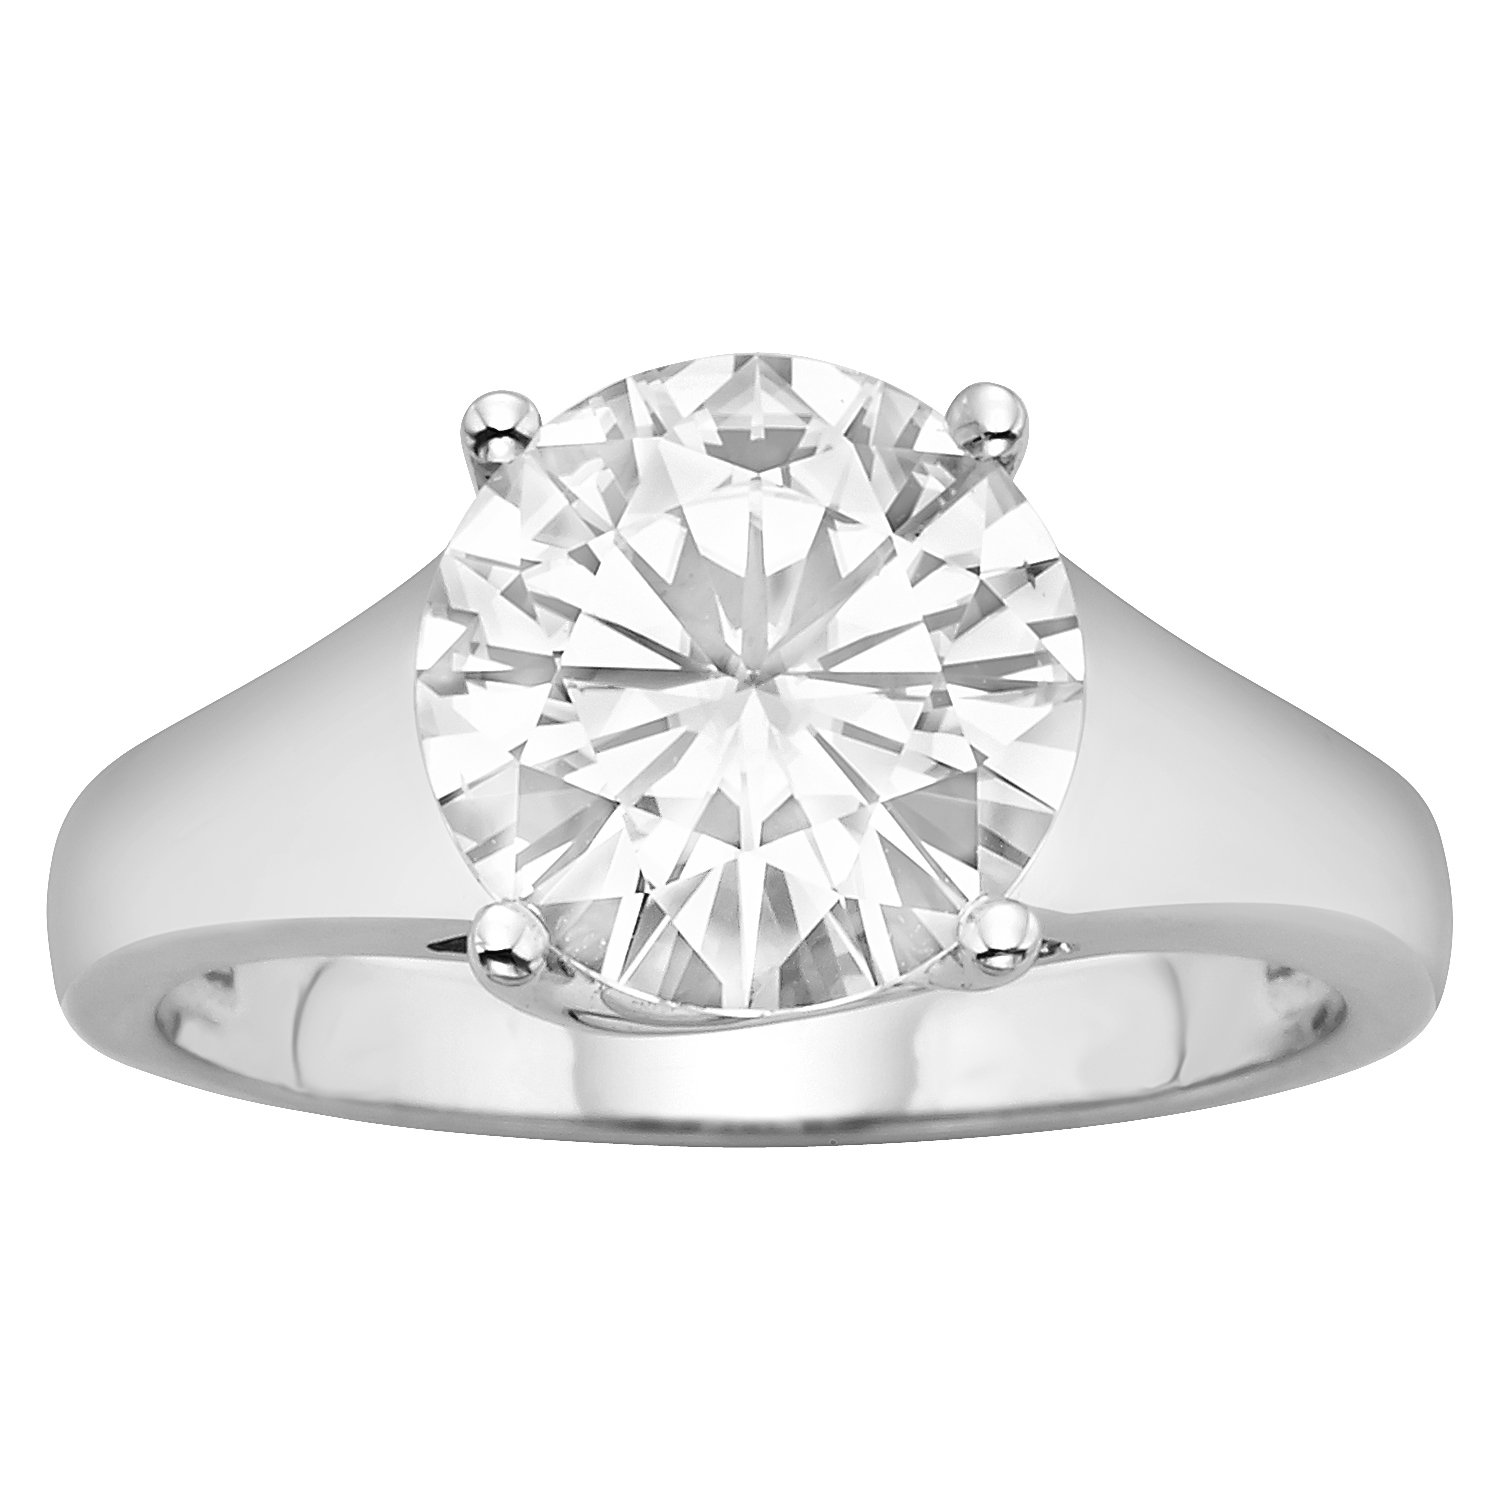 Forever Brilliant 9.5mm Moissanite Solitaire Engagement Ring - size 8, 3.10ct DEW By Charles & Colvard